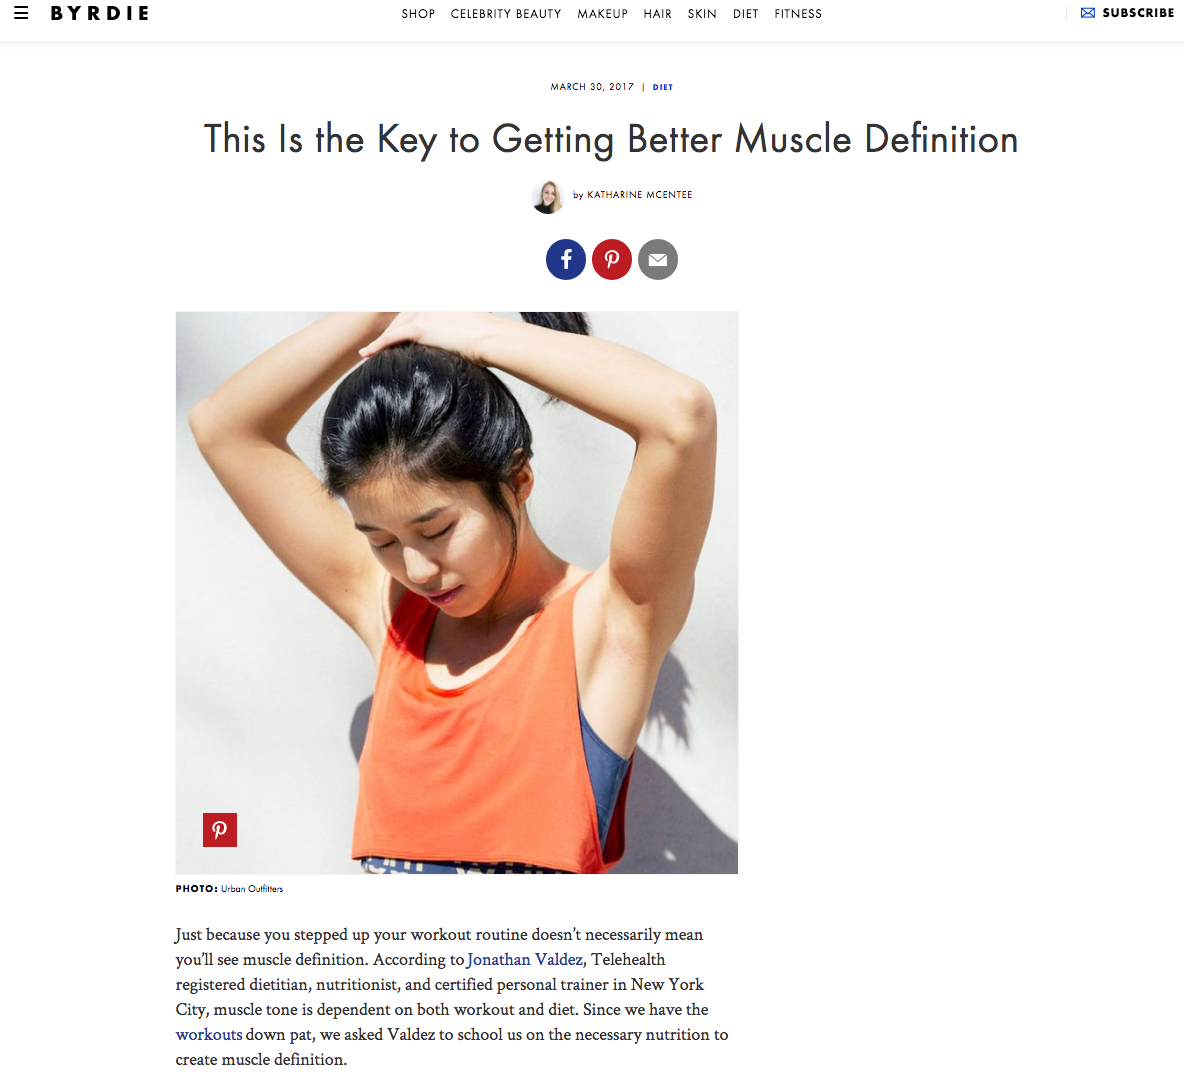 Byrdie - Jonathan Valdez contributes various articles related to motivation for exercising and sports nutrition for muscle development.http://www.byrdie.com/trainers-morning-routineshttp://www.byrdie.com/best-workout-playlists?ps=section&section=fitnesshttp://www.byrdie.com/muscle-definition-diet